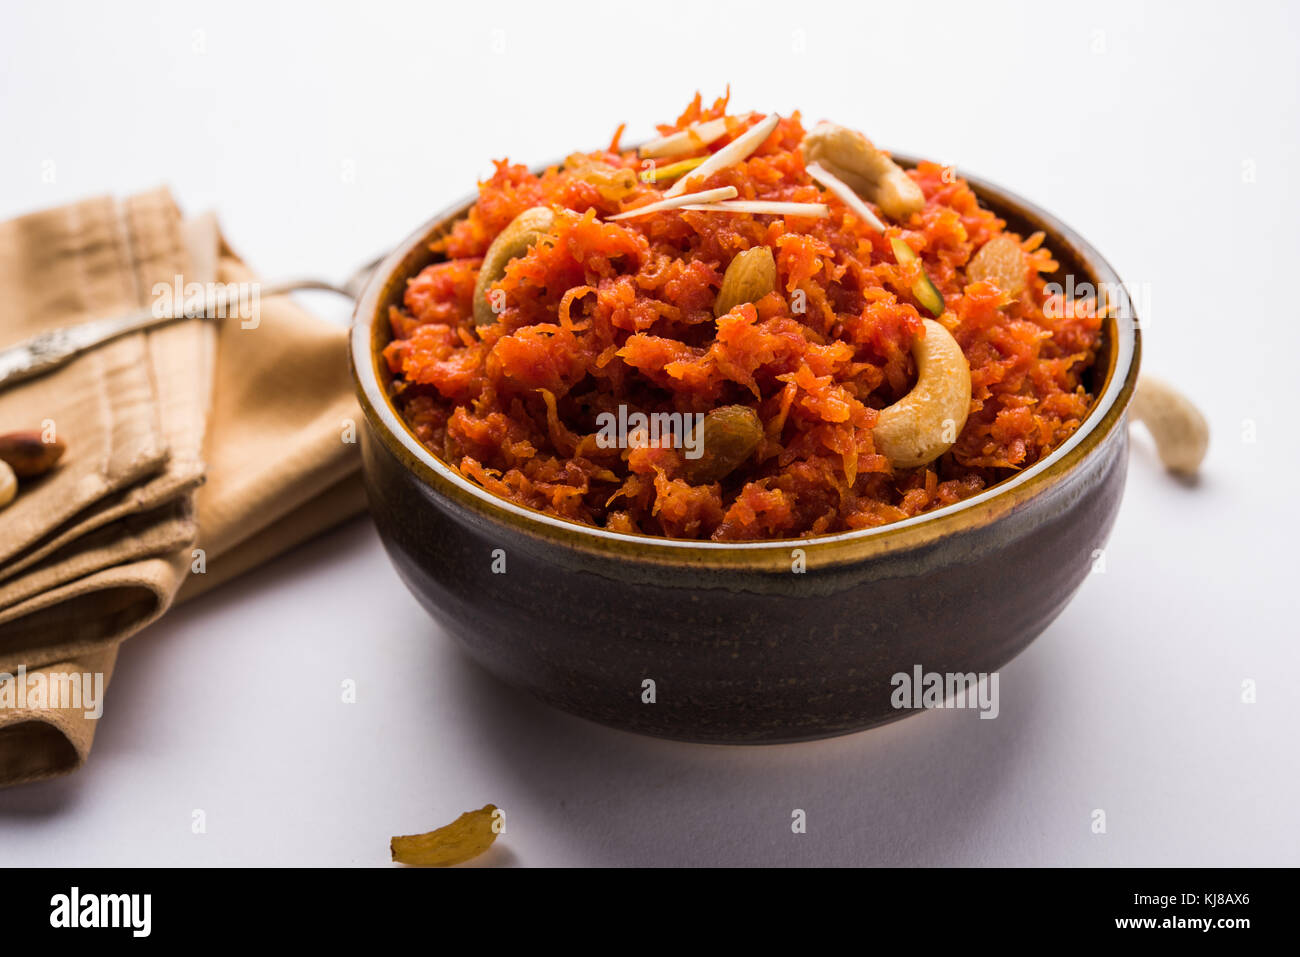 gajar halwa by githa hariharan essays 1 gajar halwa gita hariharan 2 my brother, my brother norah burke (from indian literature  essays two out of four 12 x 2 = 24 2.